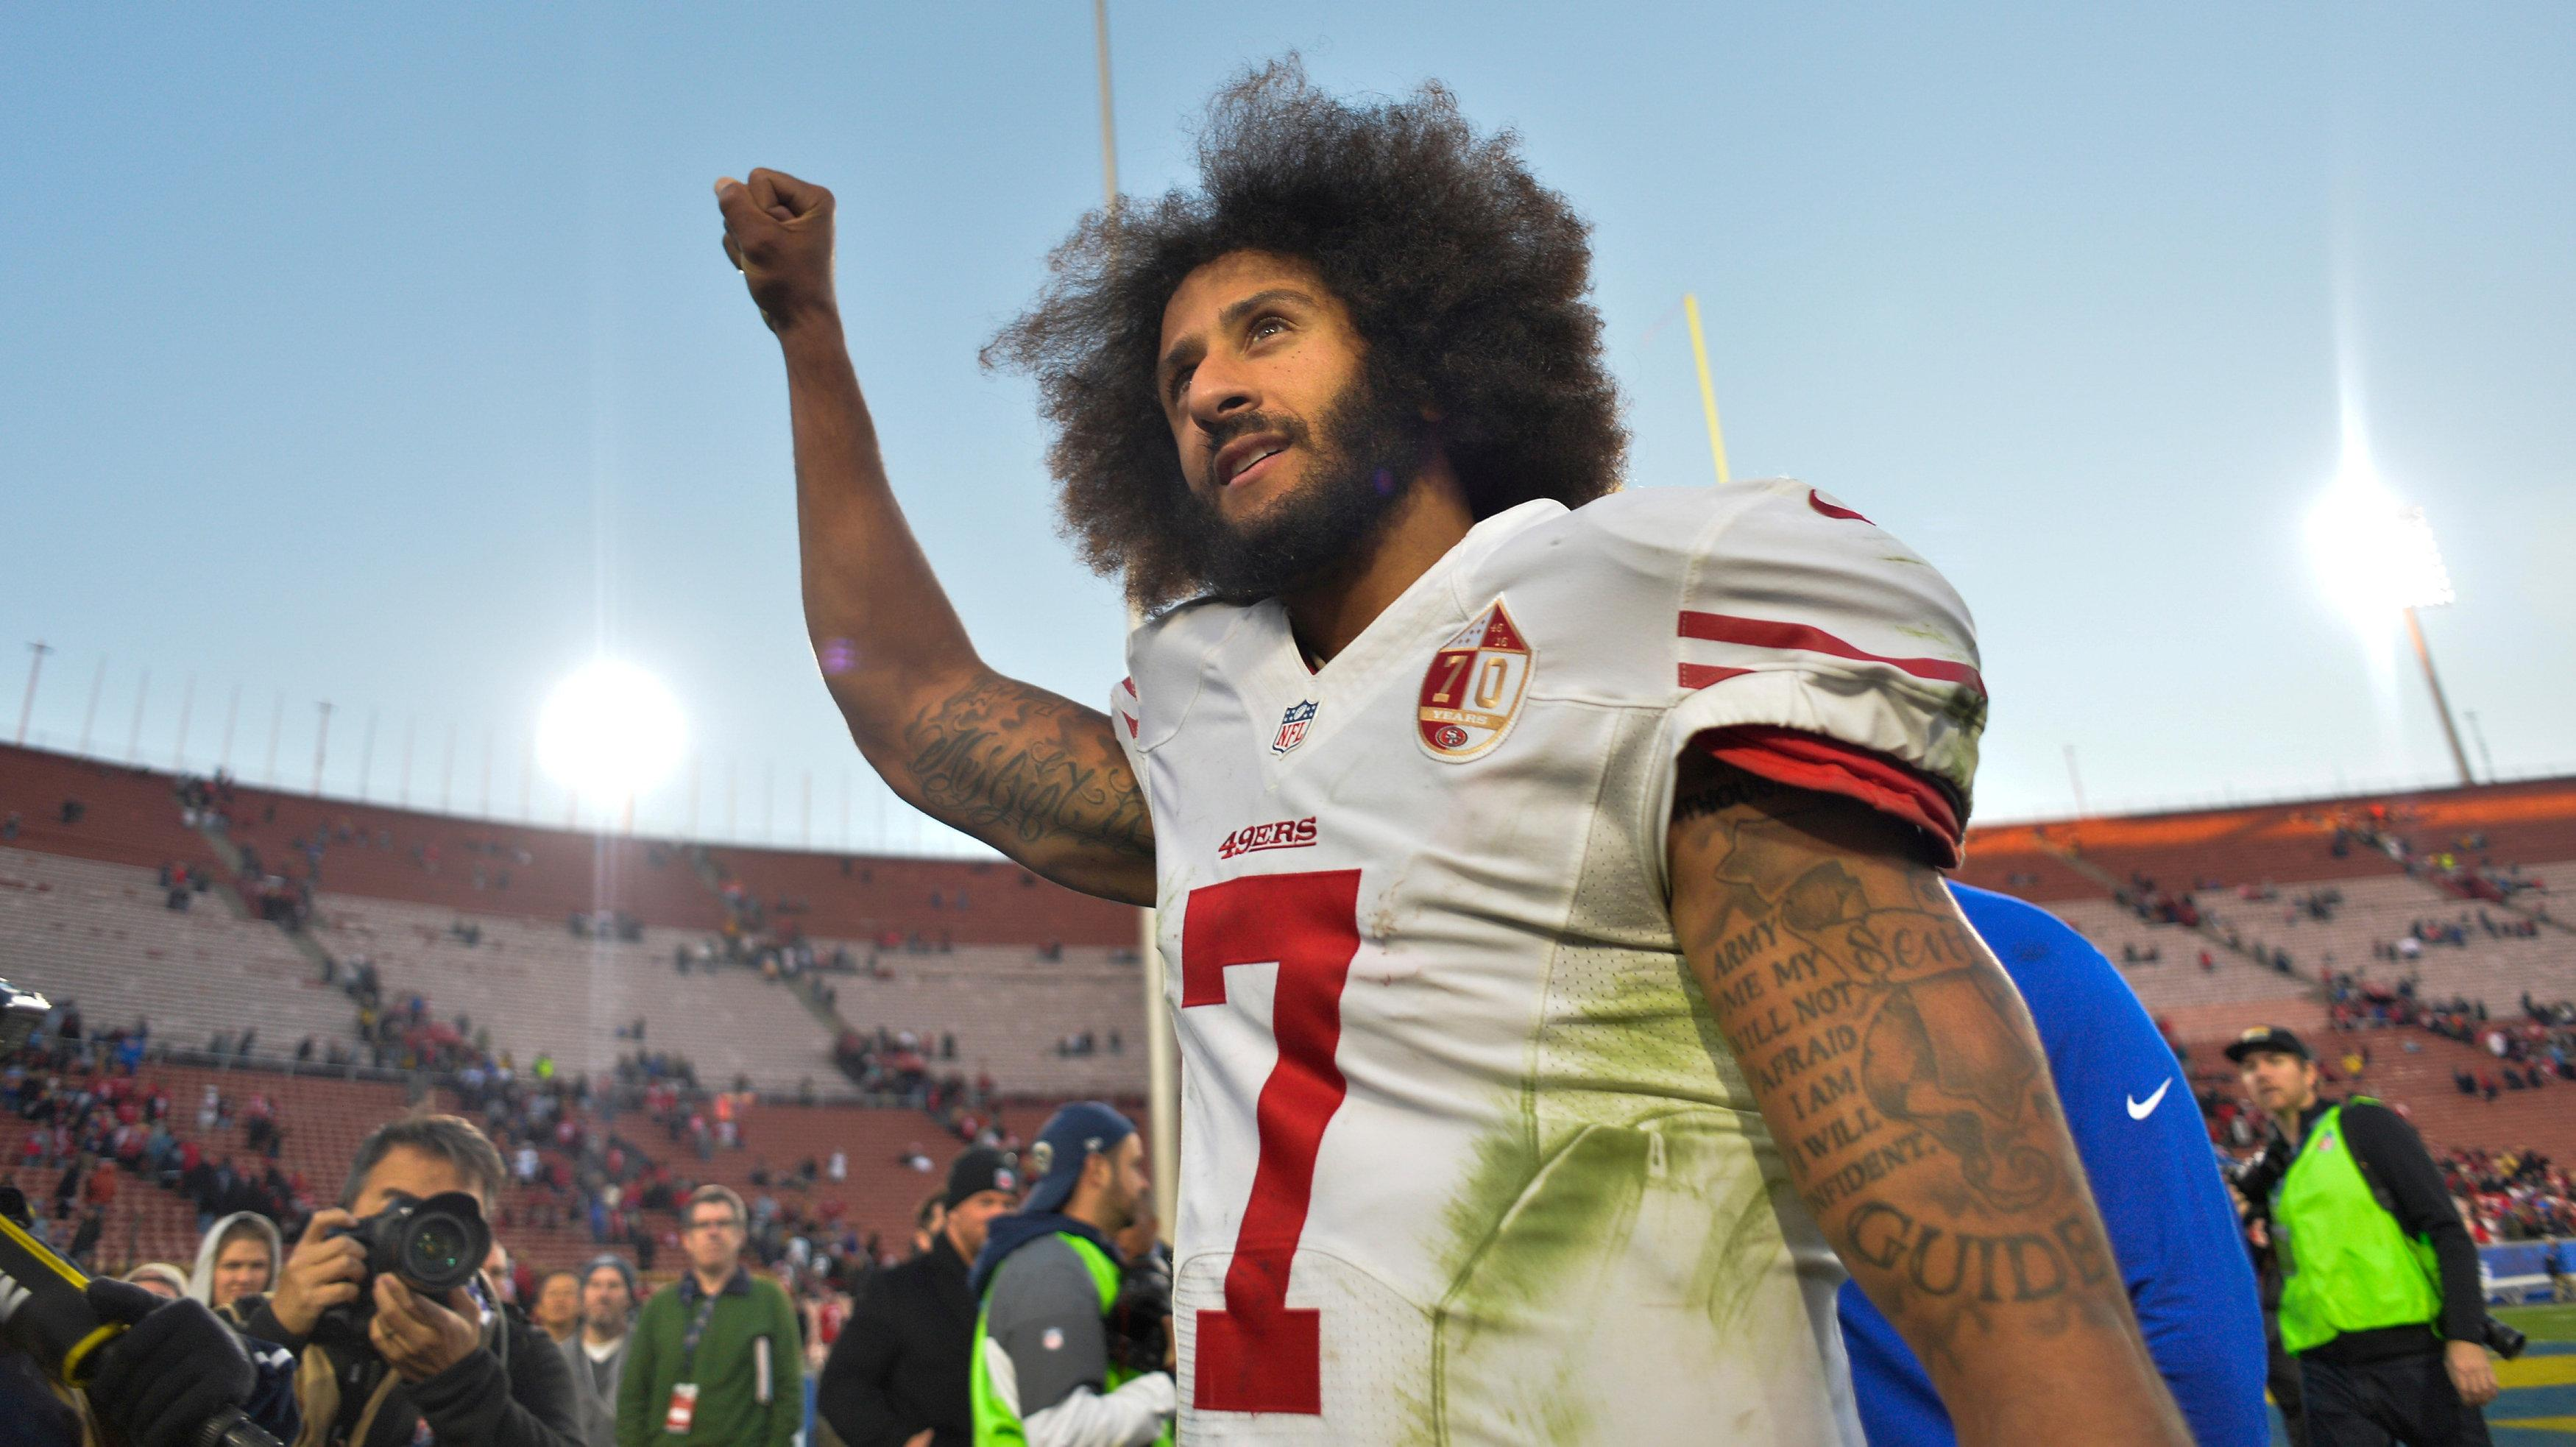 Kaepernick holds his right arm aloft after a game at the Los Angeles Memorial Colosseum